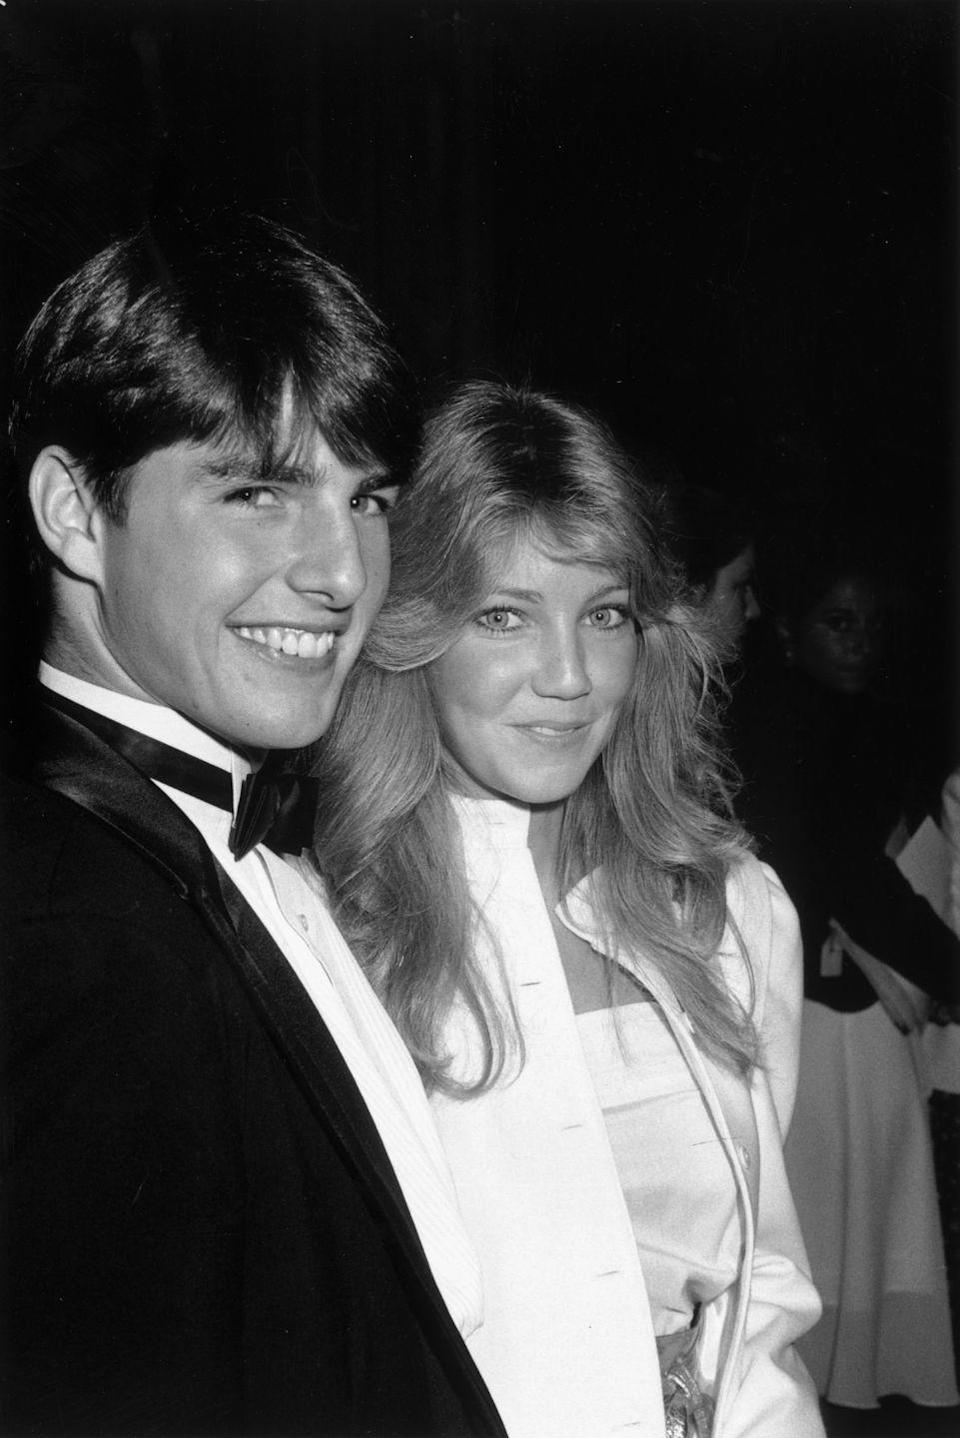 <p>Tom Cruise attended the premiere of <em>Taps </em>(his debut in a feature film) with then-girlfriend Heather Locklear in 1981. Shortly after, the actor's celebrity status was set when he became a member of Hollywood's Brat Pack alongside teen actors Rob Lowe and Emilio Estevez. </p>